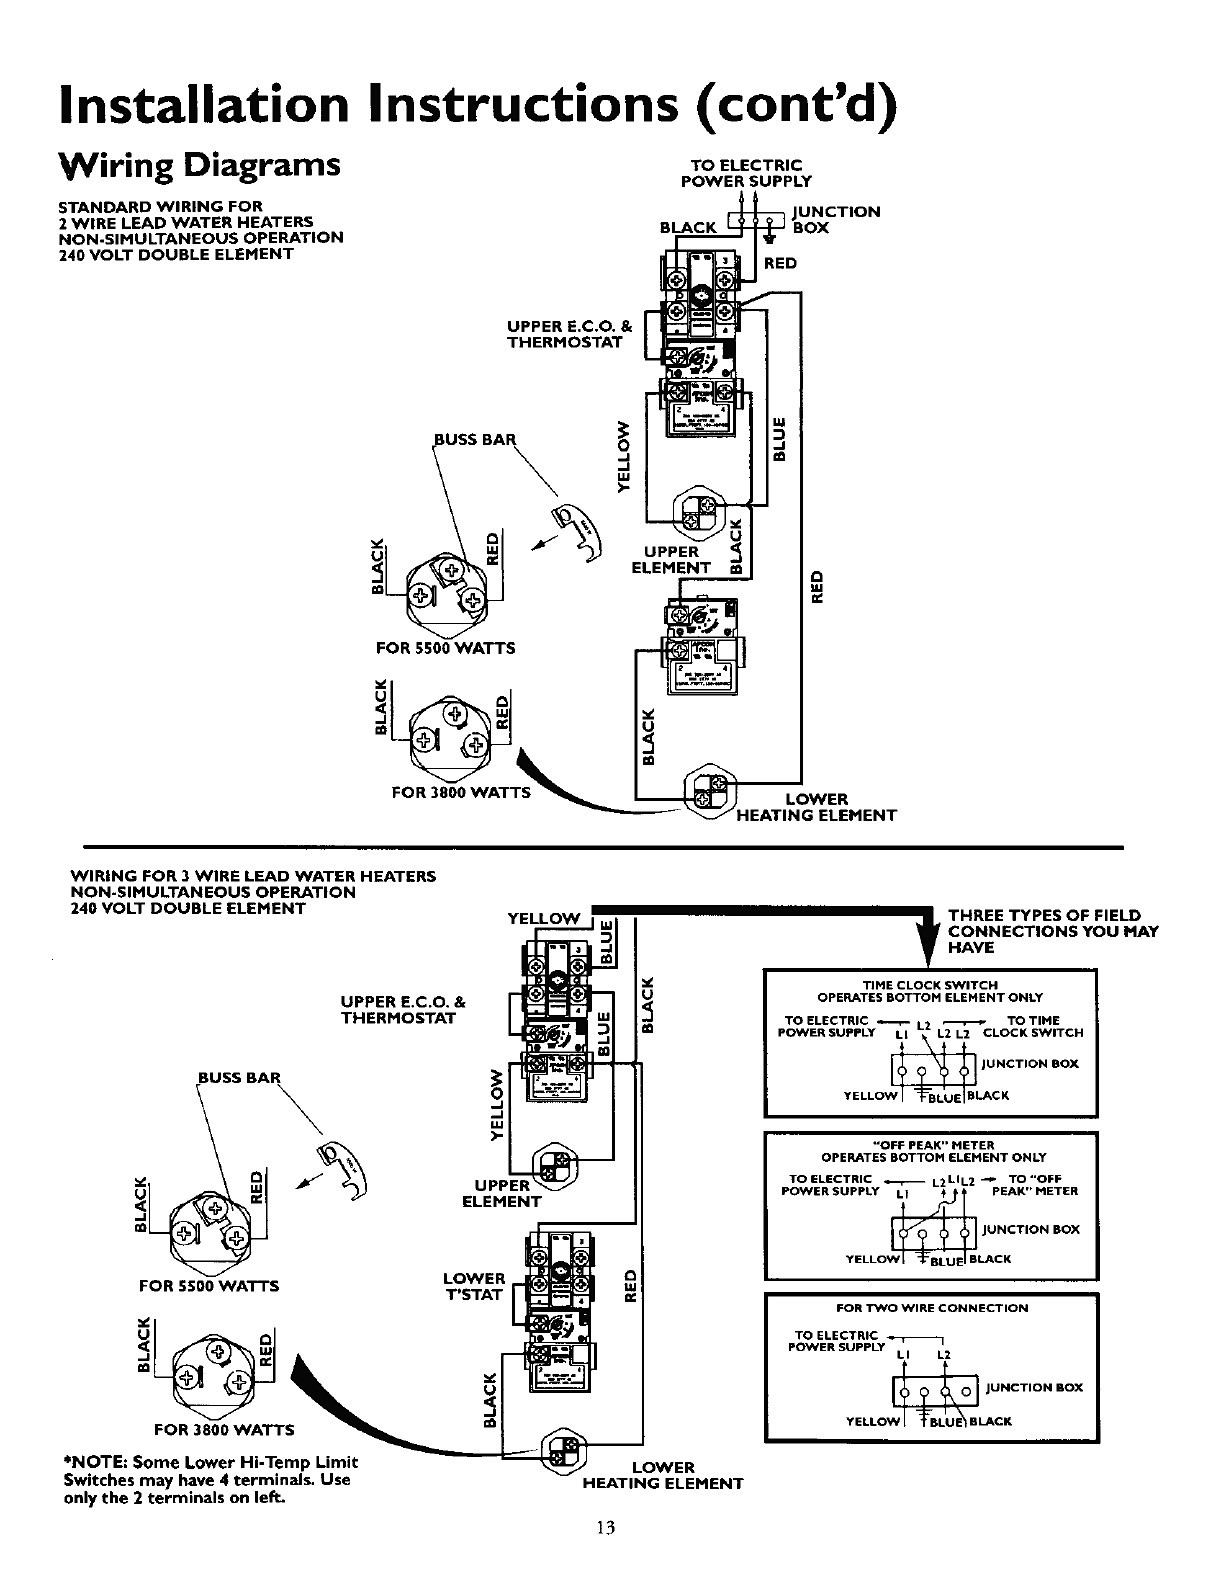 atwood water heater switch wiring diagram Download-Wiring Diagram for Water Heater Fresh atwood Water Heater Switch Wiring 16-k